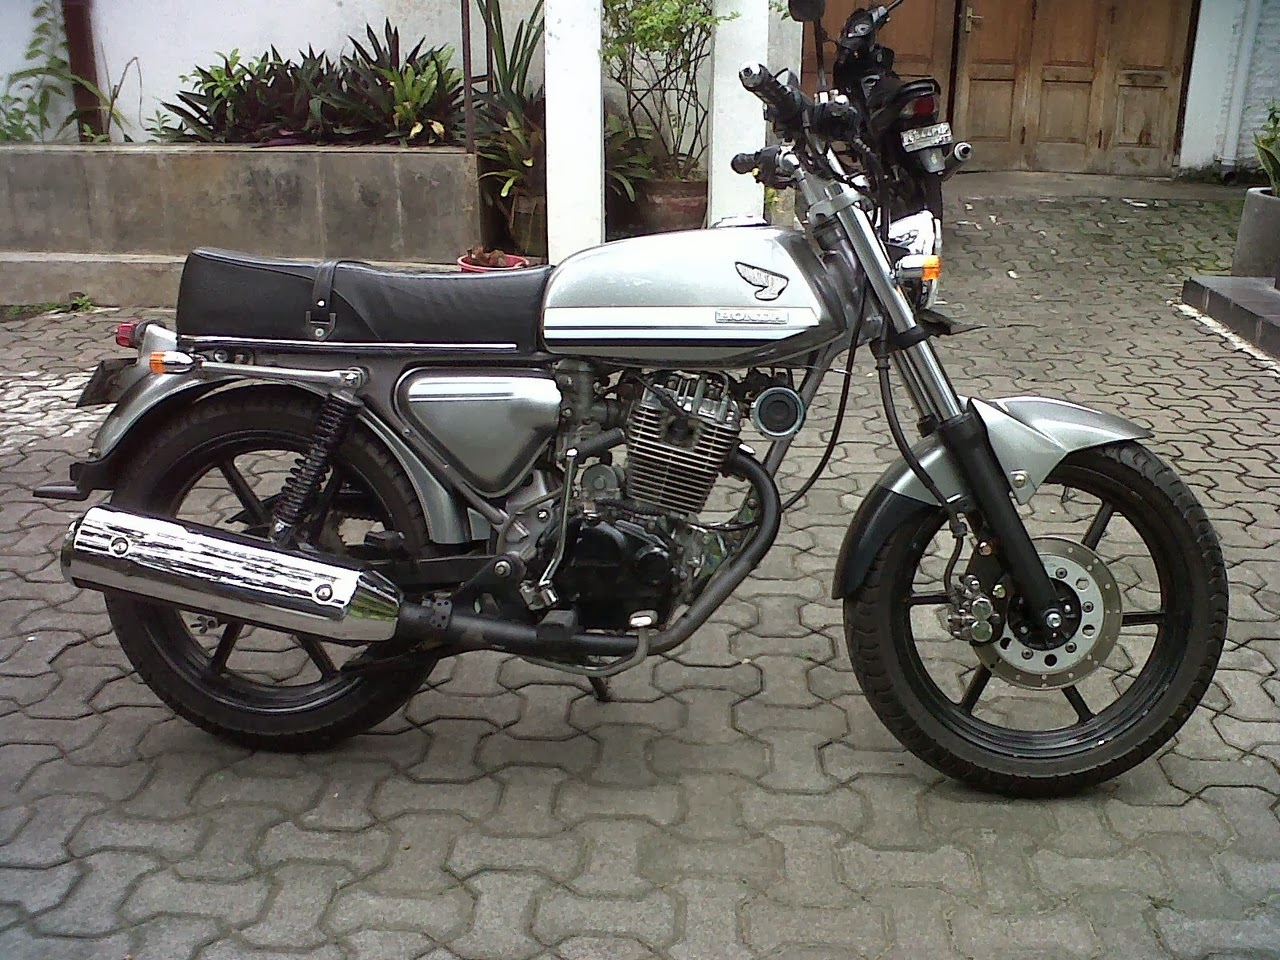 Modifikasi Motor CB 100 Klasik  Modifikasi Motor Wallpaper HD